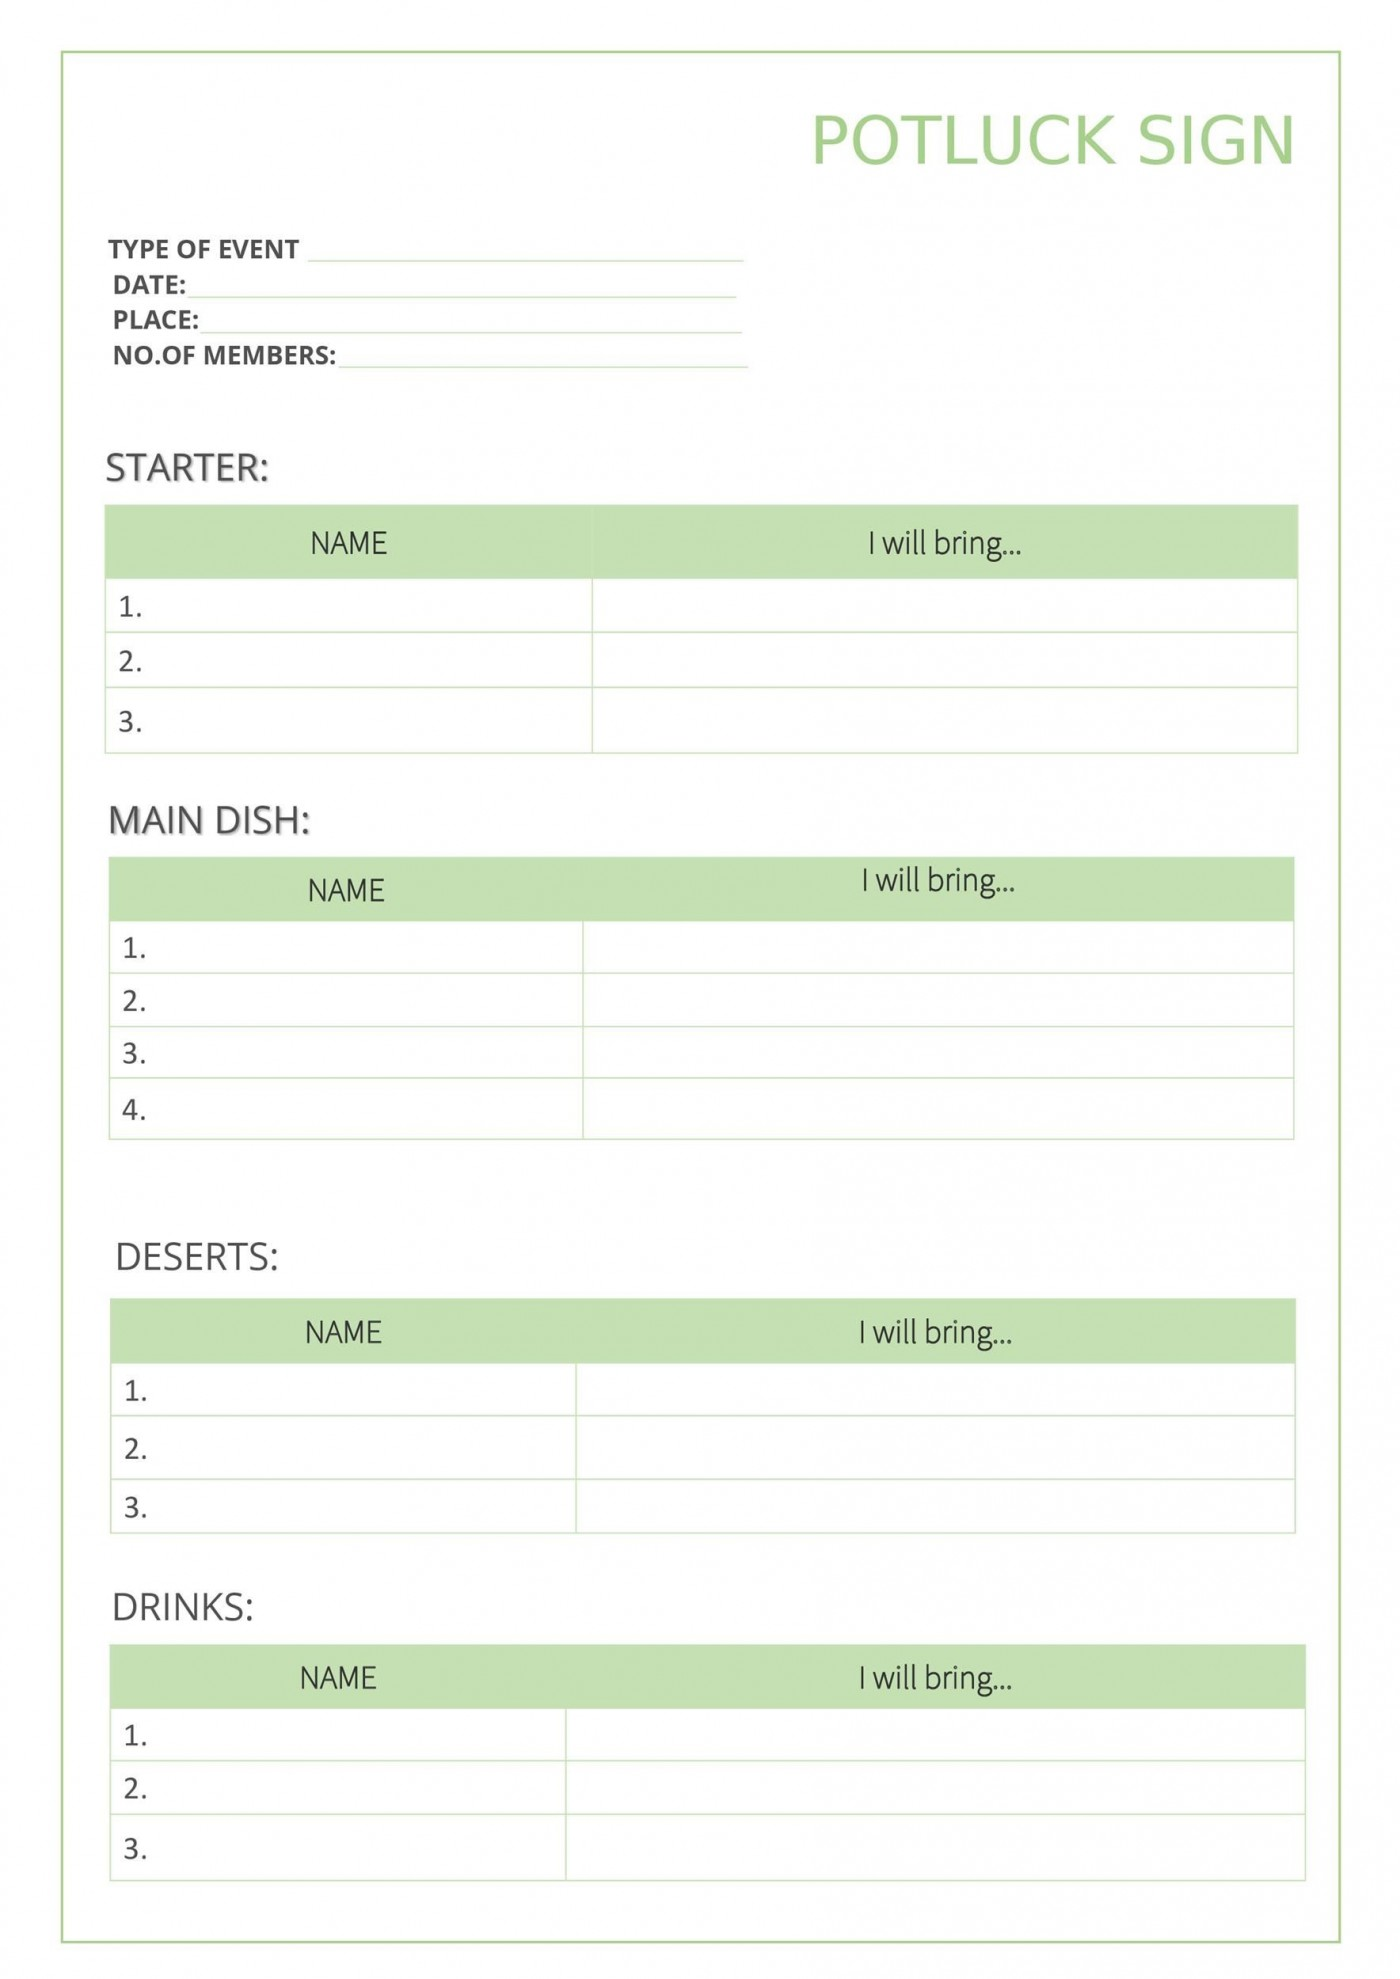 009 Outstanding Potluck Signup Sheet Template Word Photo  Microsoft Free Printable Sign Up1400